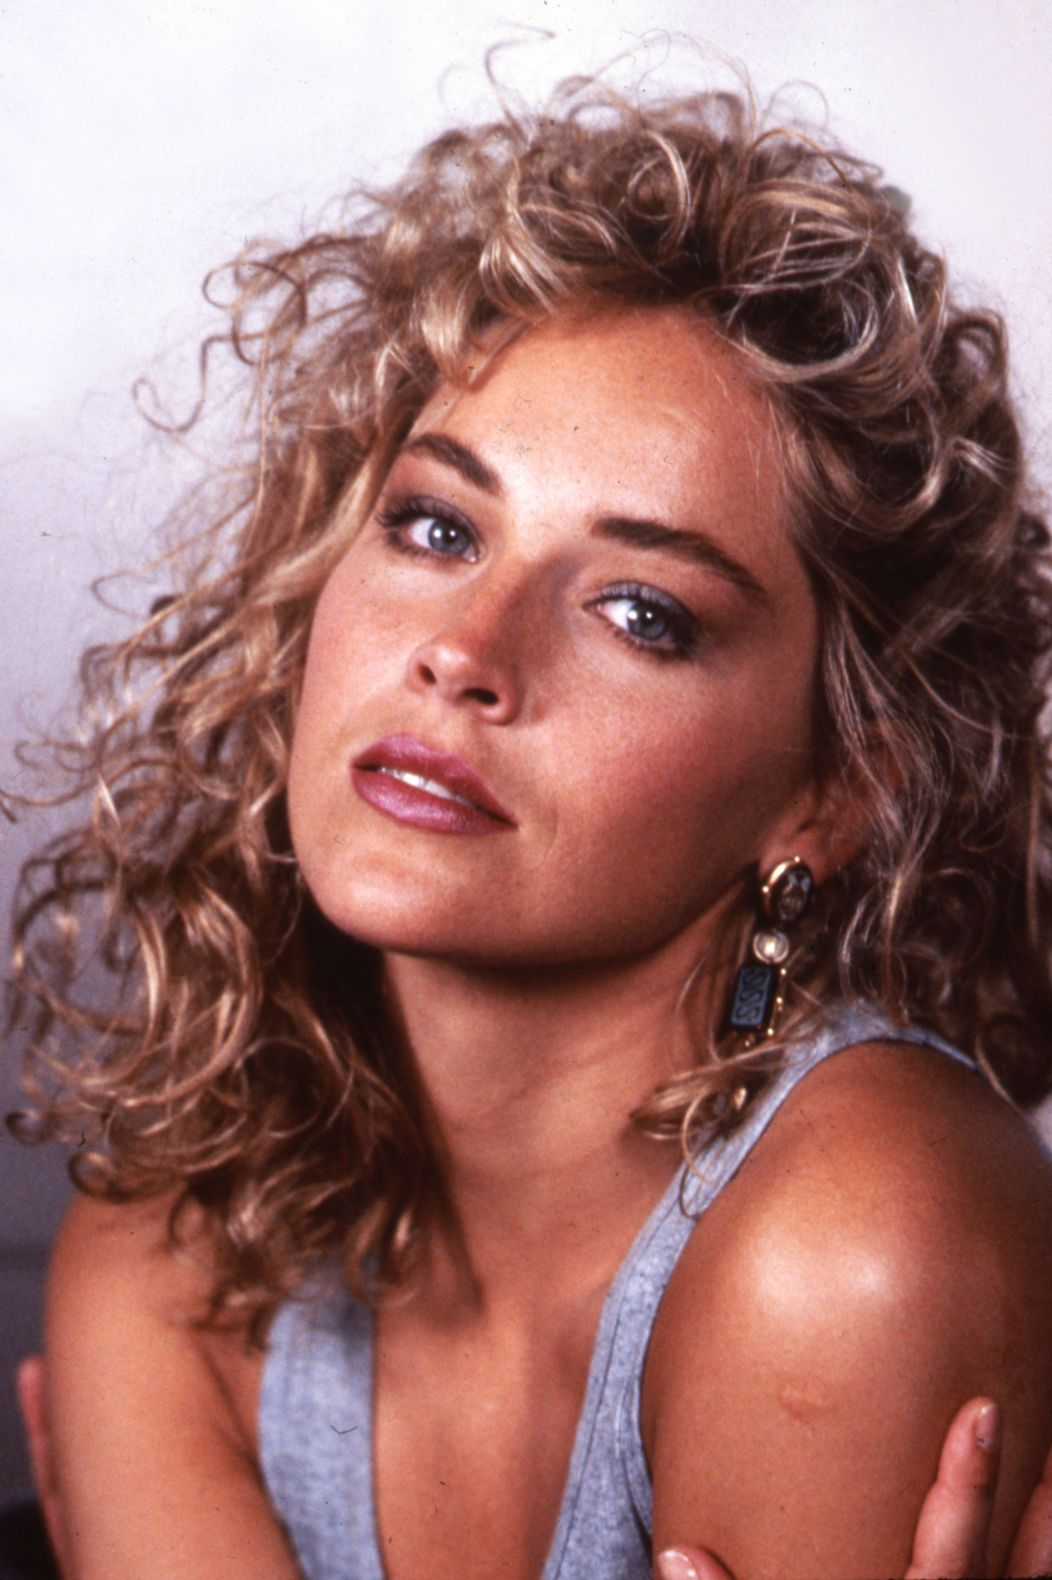 Young Sharon Stone 1052 215 1580 Hair Curls Iconic In